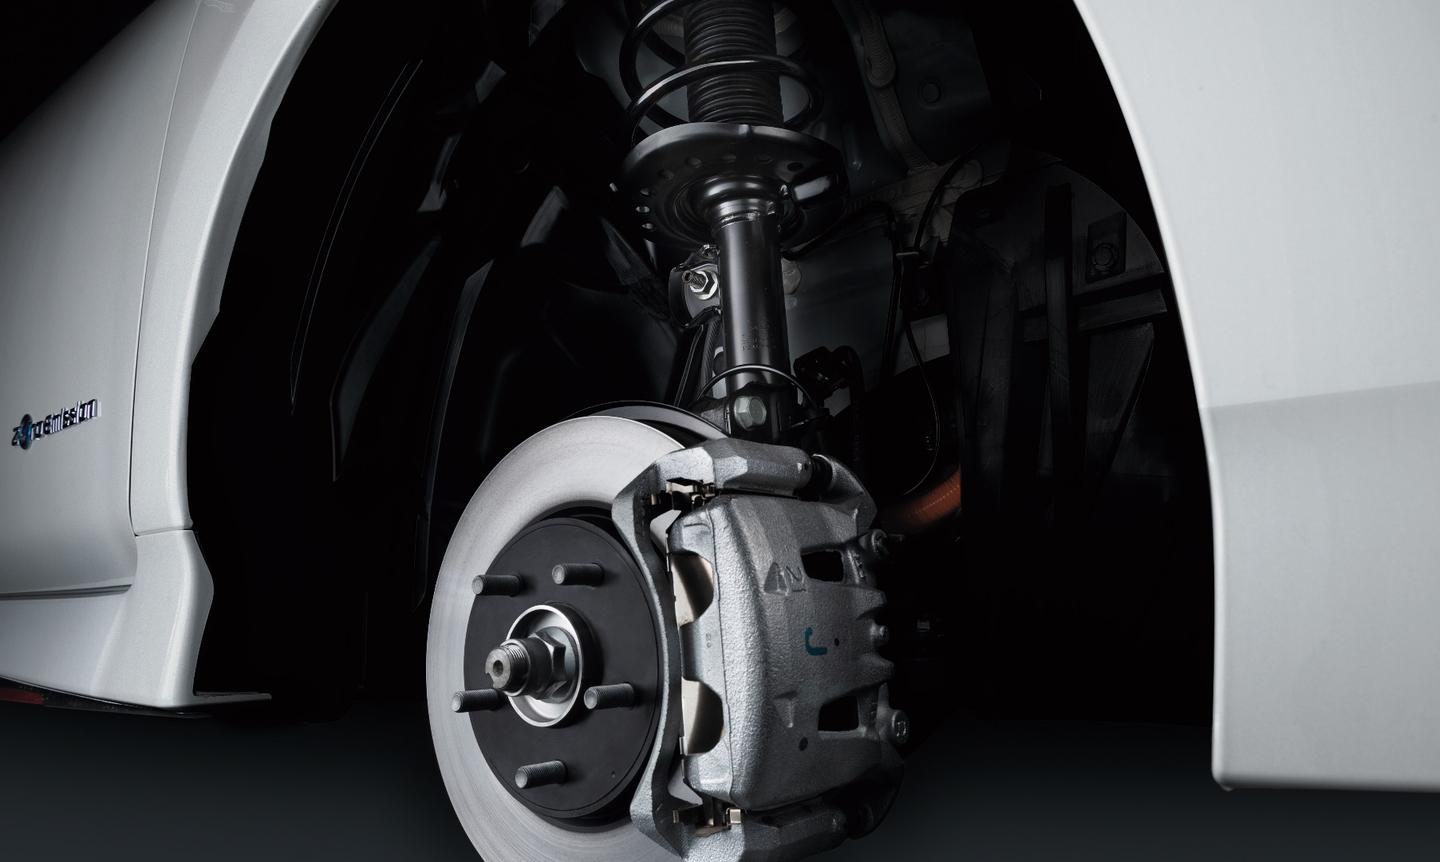 The NIssan Leaf Nismo sports customized suspension